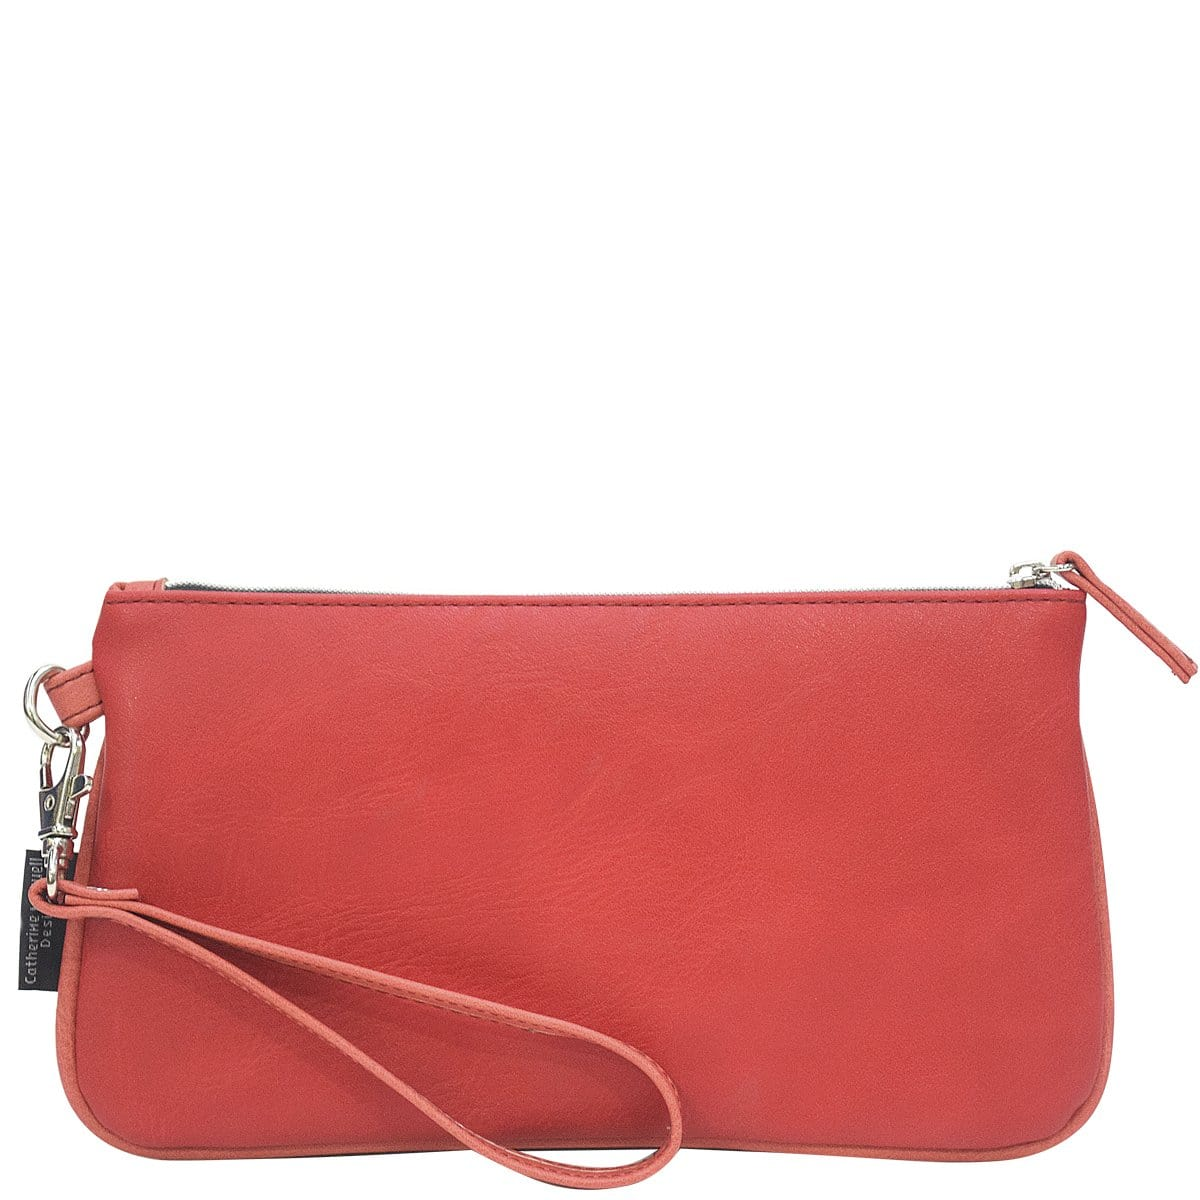 Clutch Wallet - Red/Coral